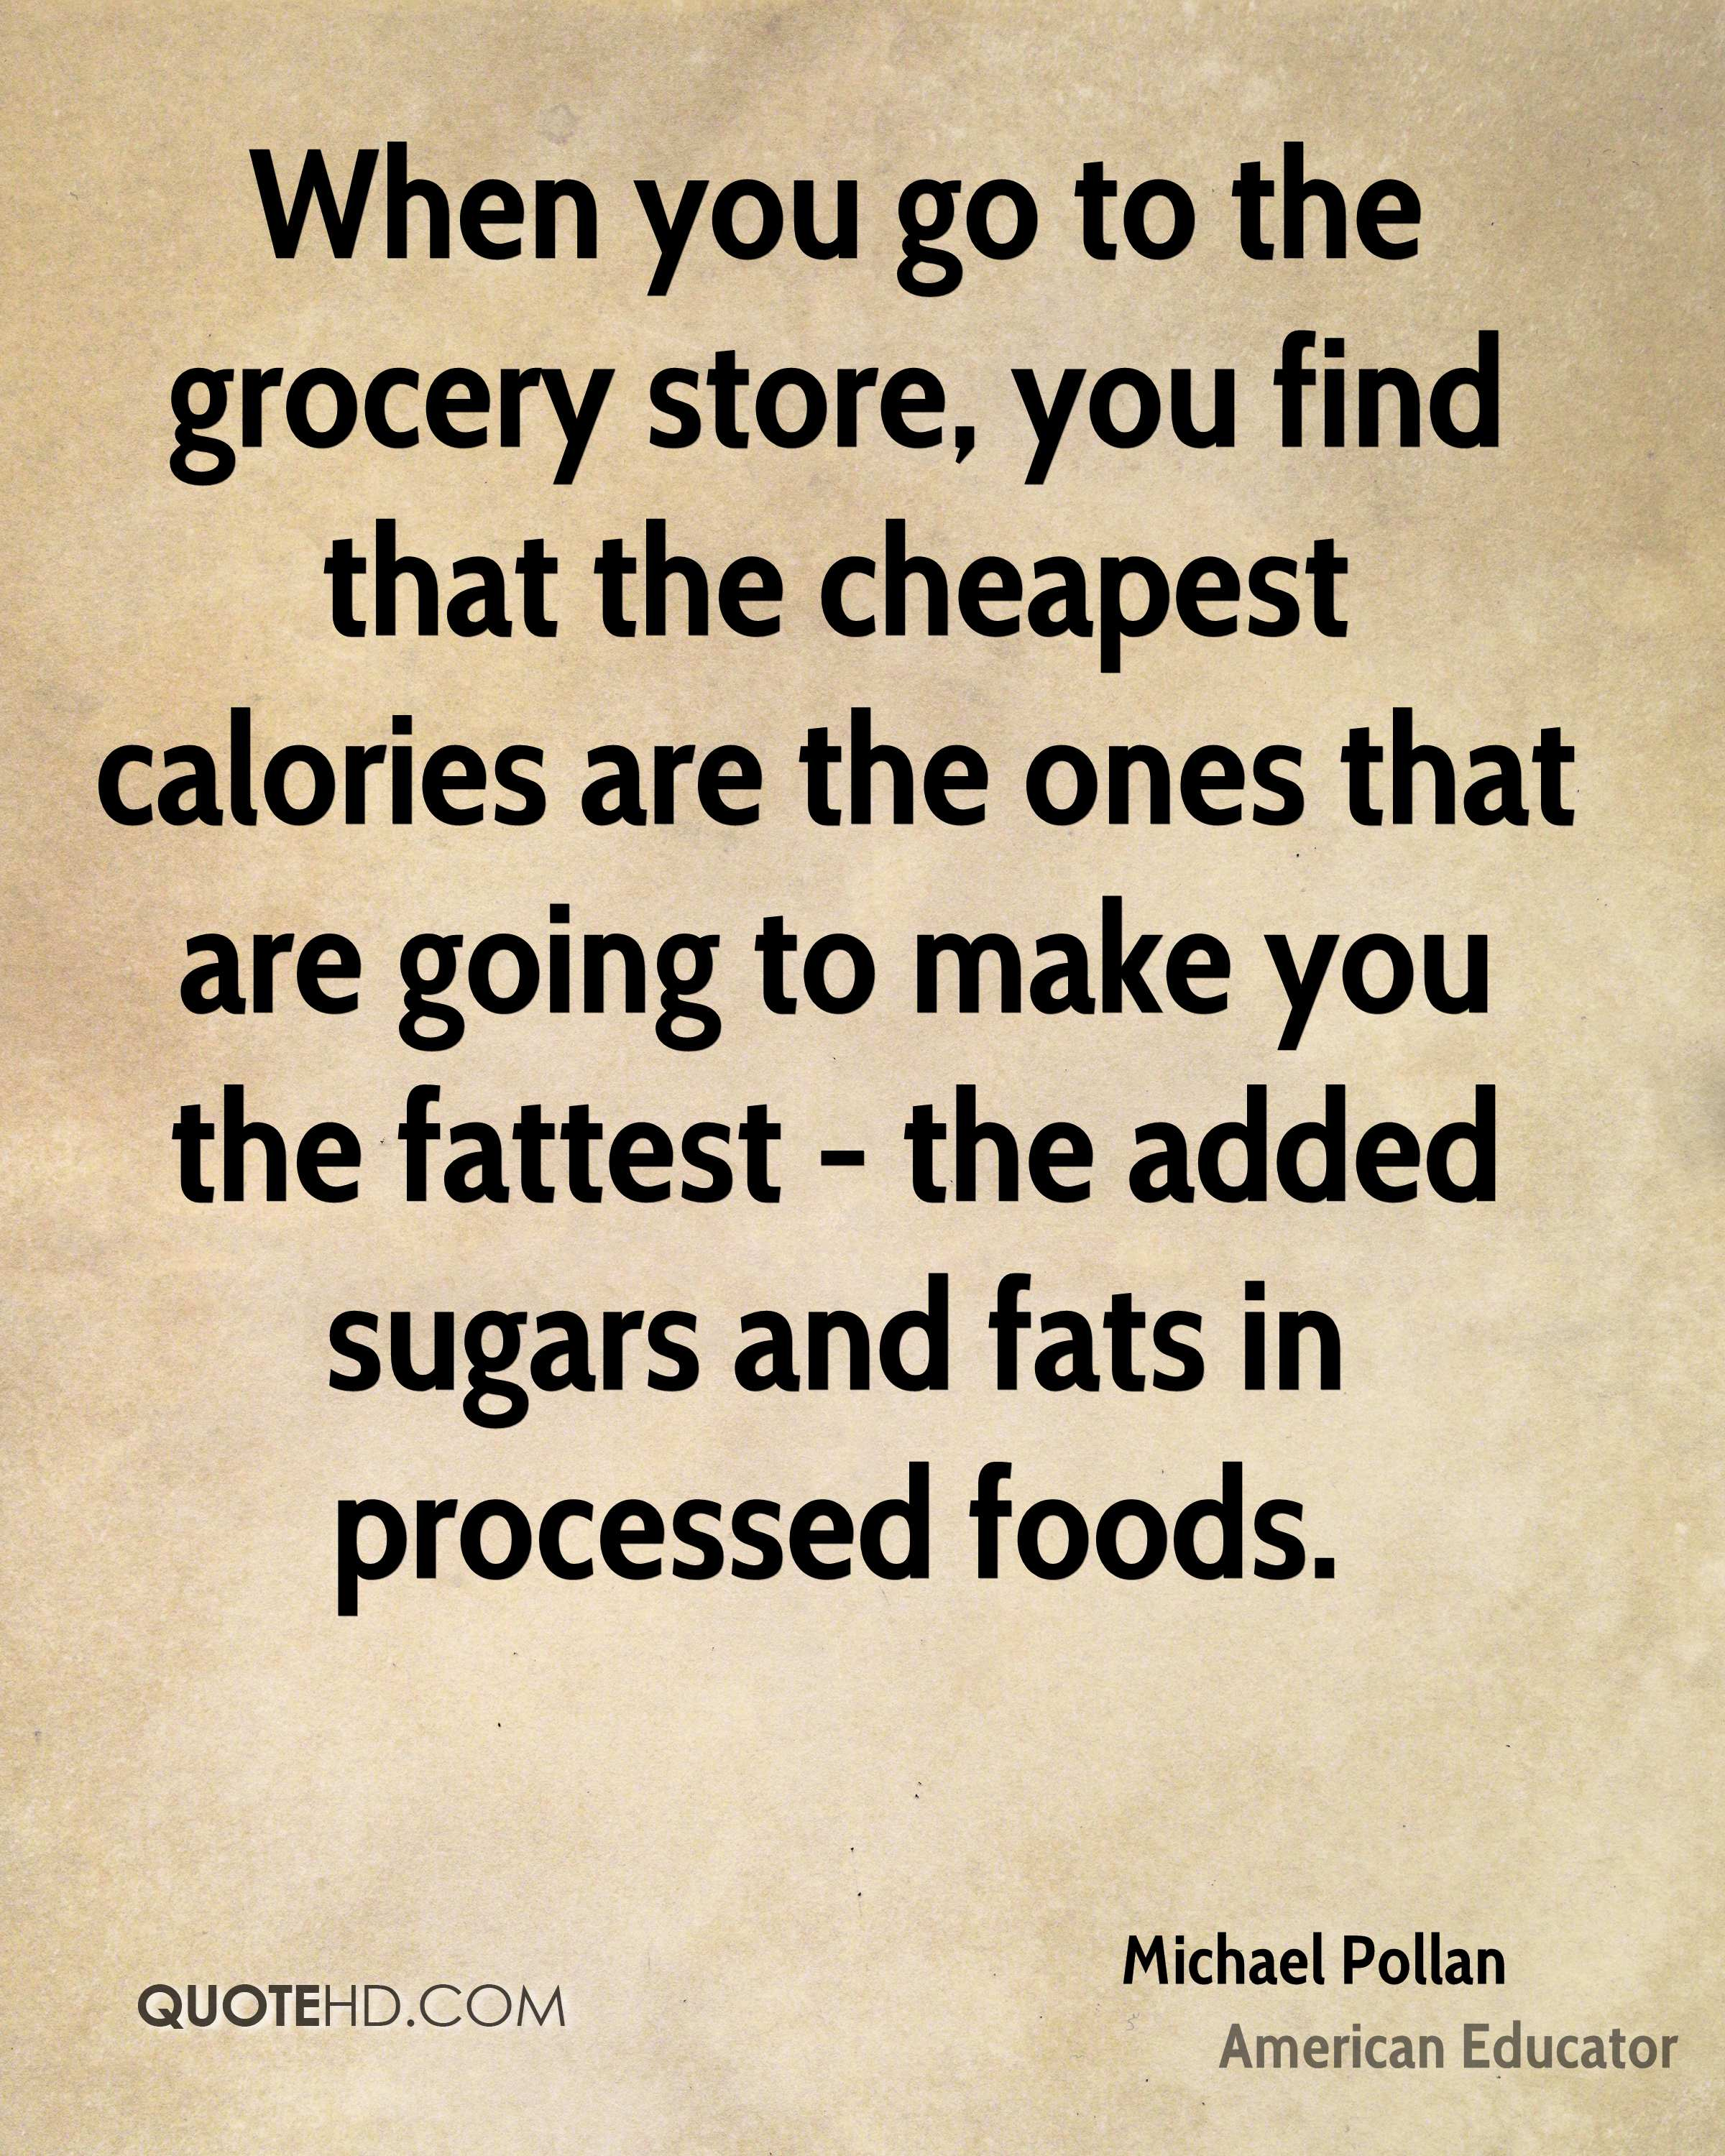 When you go to the grocery store, you find that the cheapest calories are the ones that are going to make you the fattest - the added sugars and fats in processed foods.